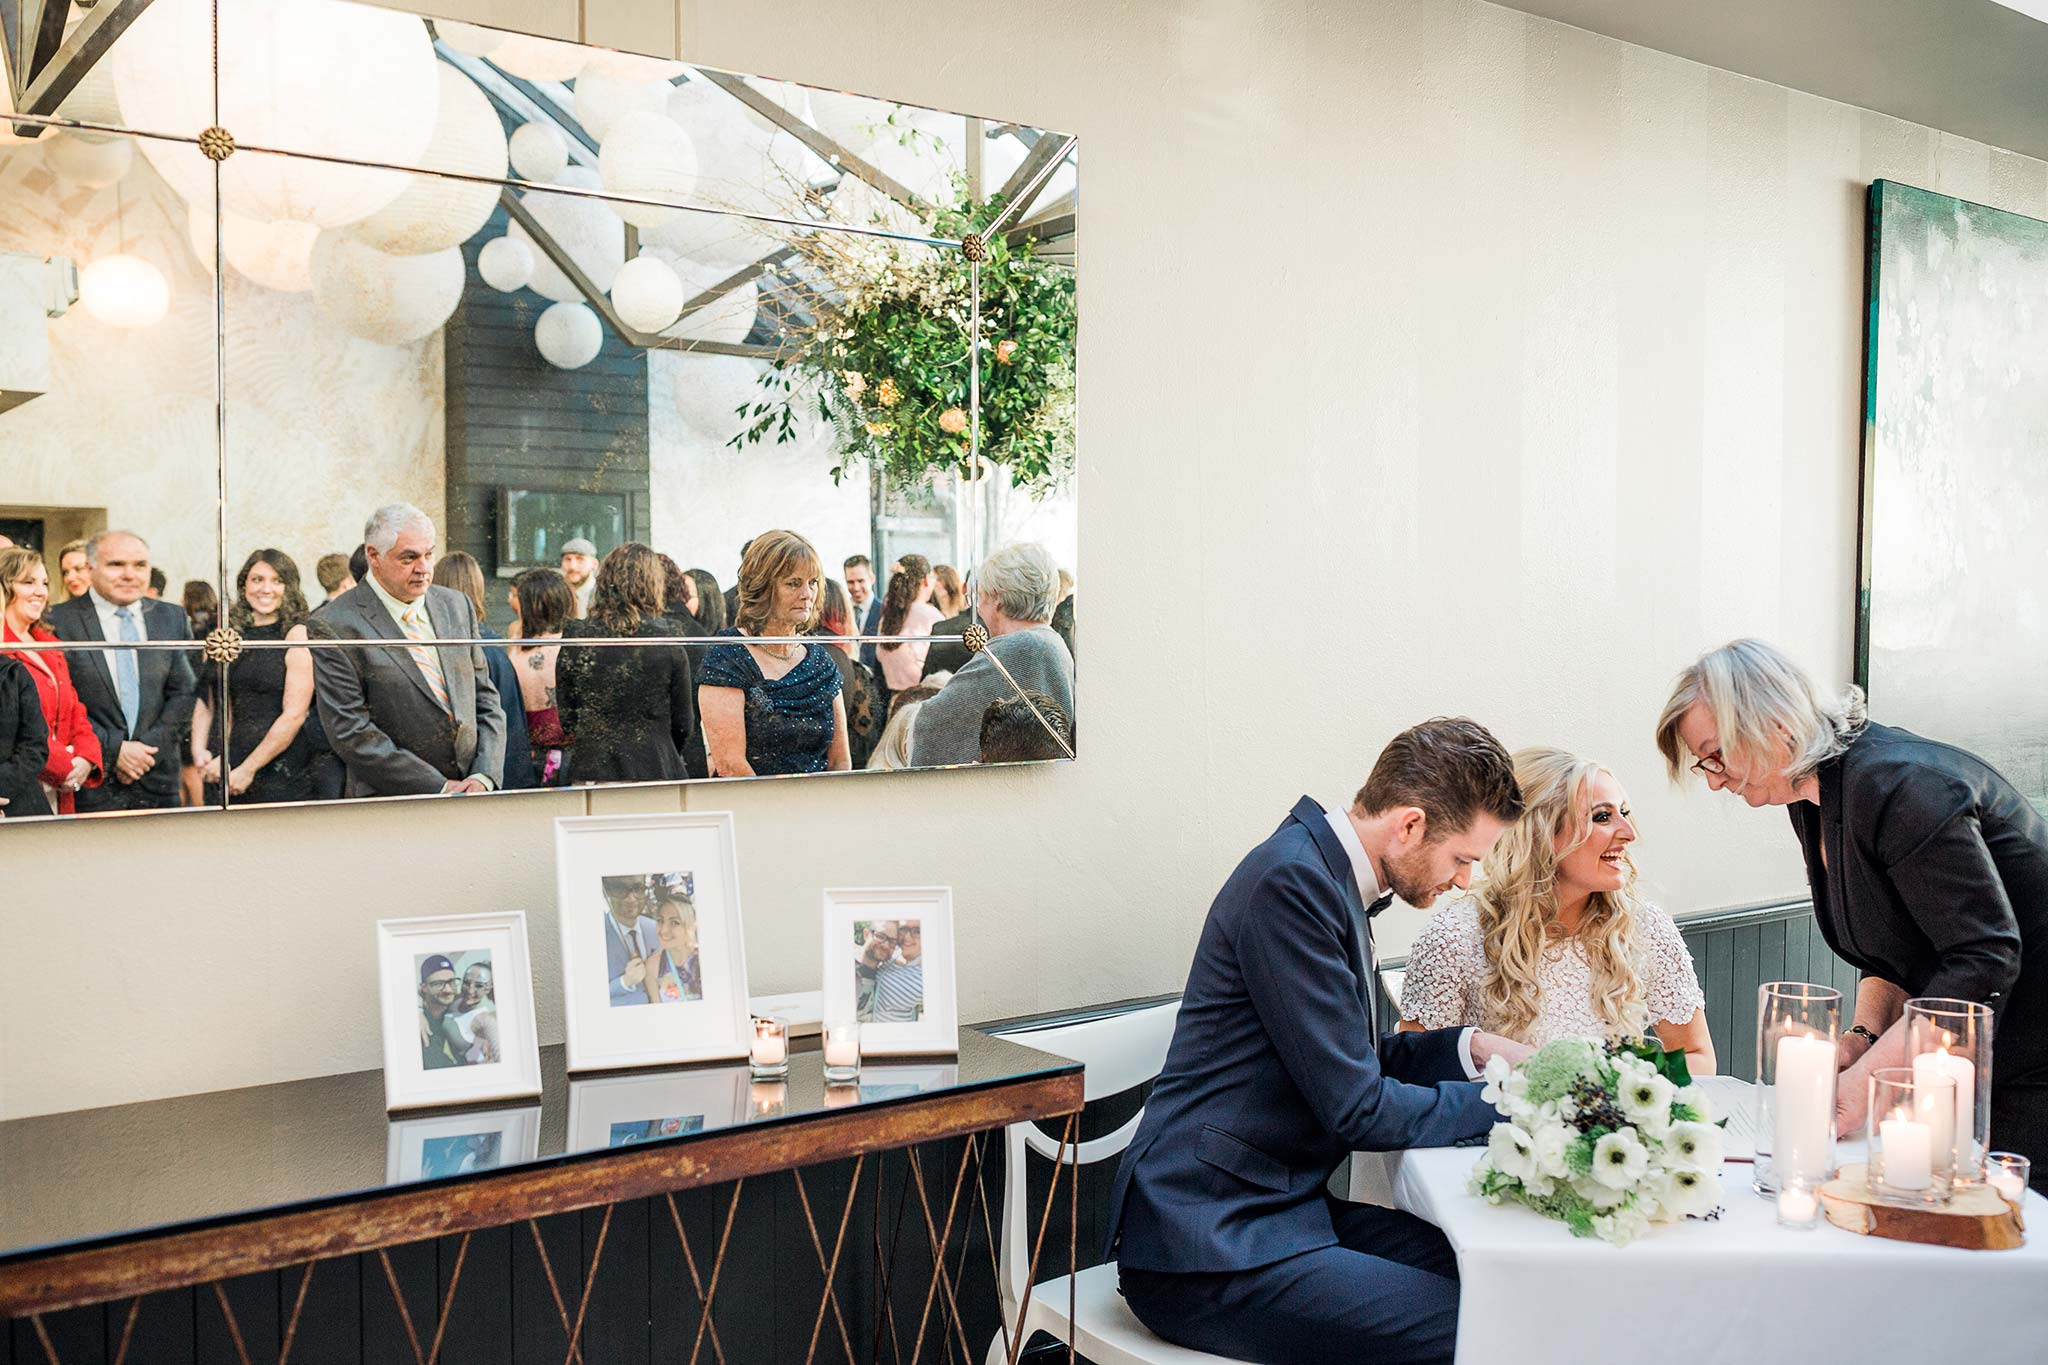 melbourne-fitzroy-st-andrews-conservatory-pumphouse-wedding-venue-ceremony-signing-paper